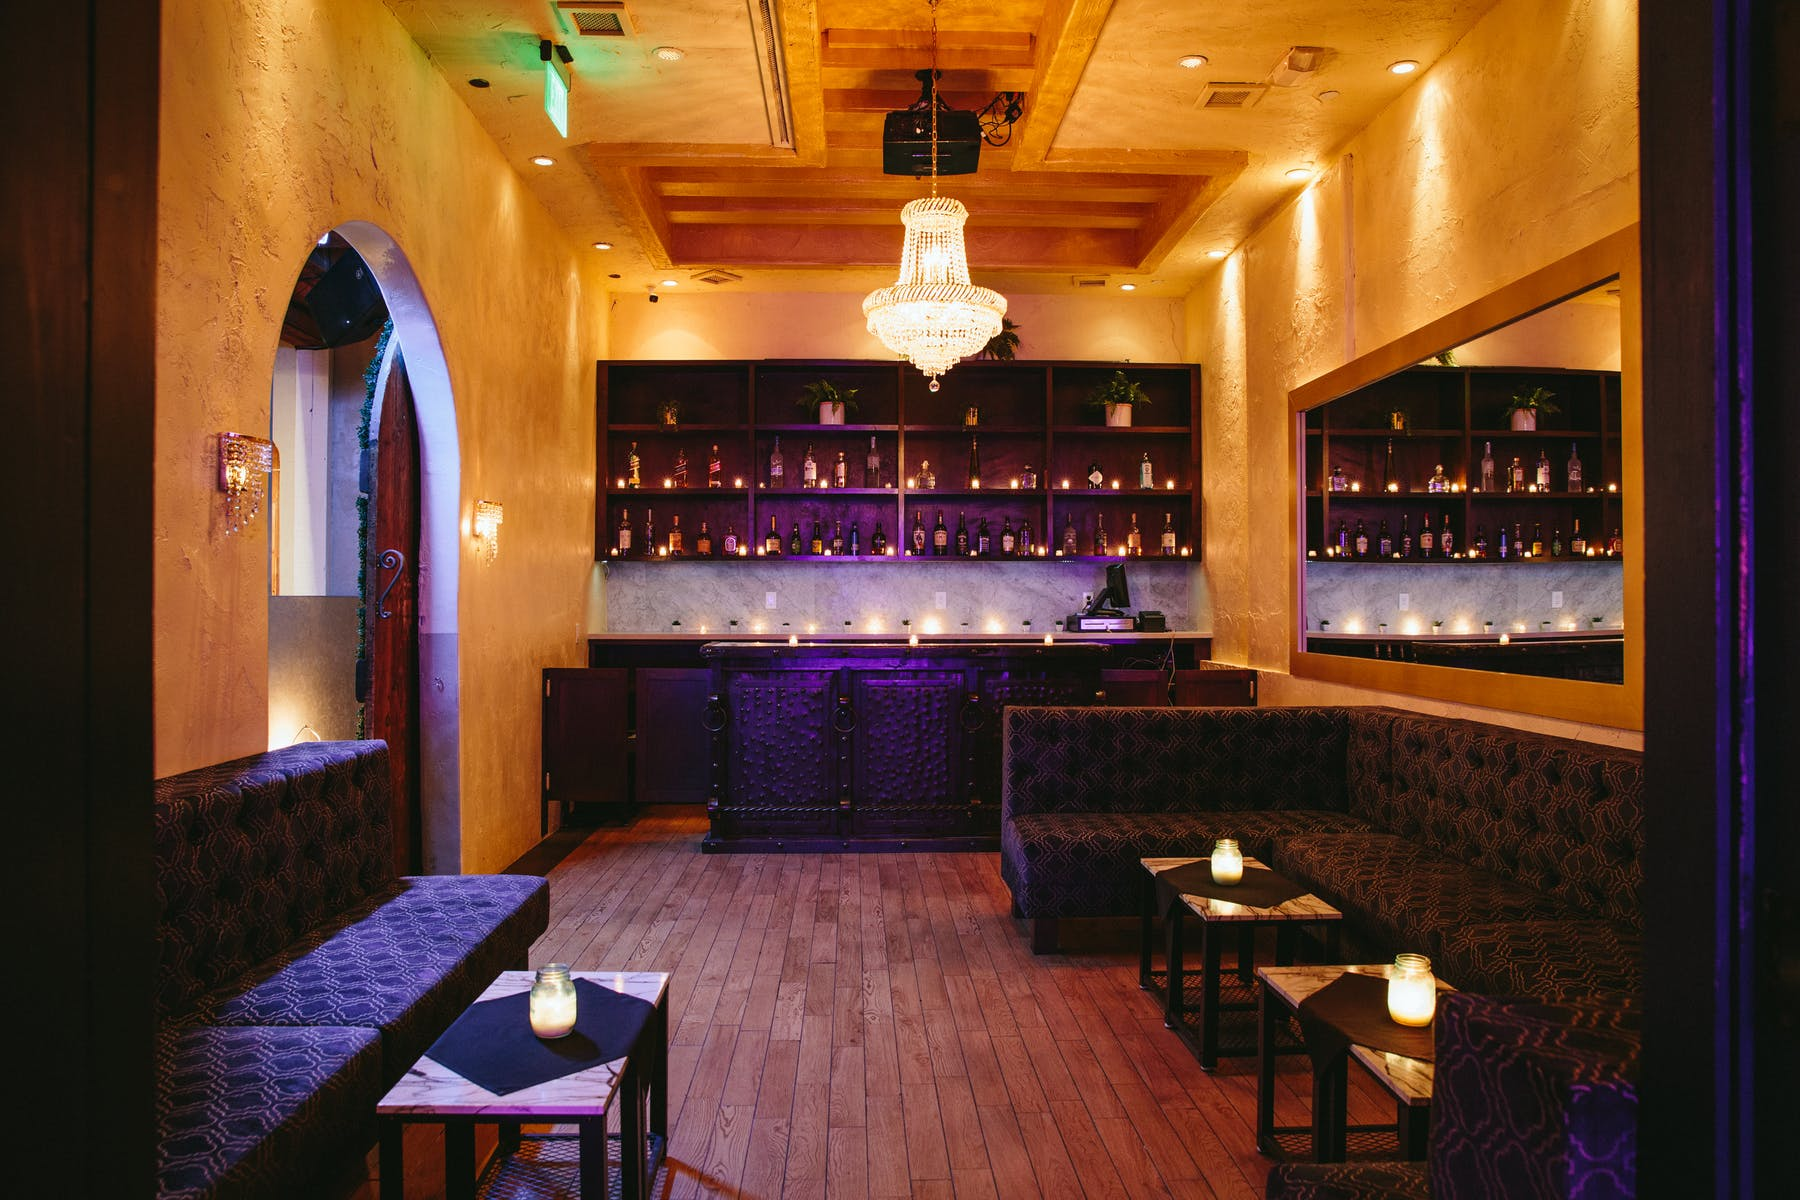 a big room with a bar, a shelf full of bottles, a table booth and a chandelier